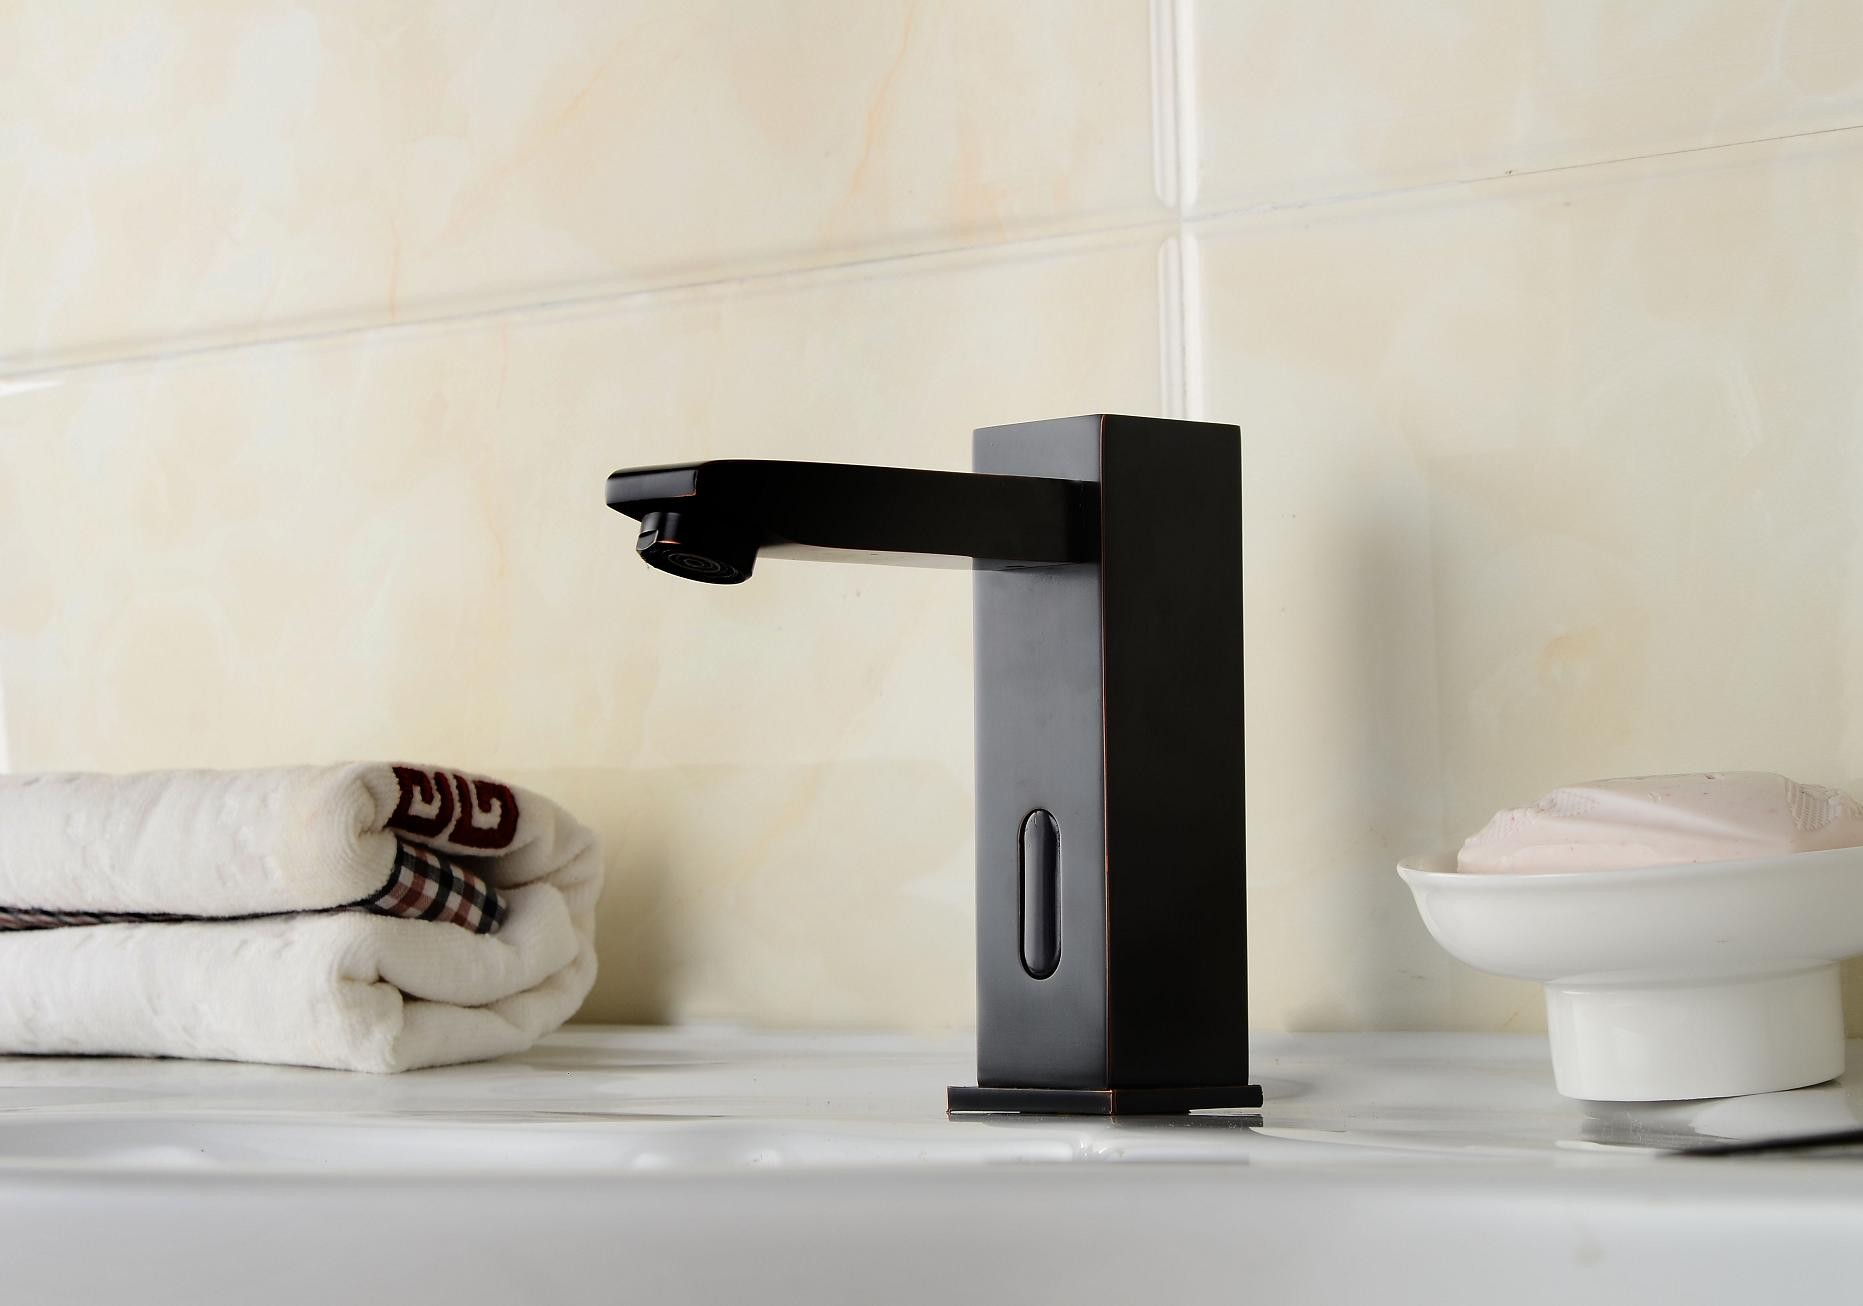 Oil Rubbed Bronze Bathroom Sink Tap With Automatic Sensor